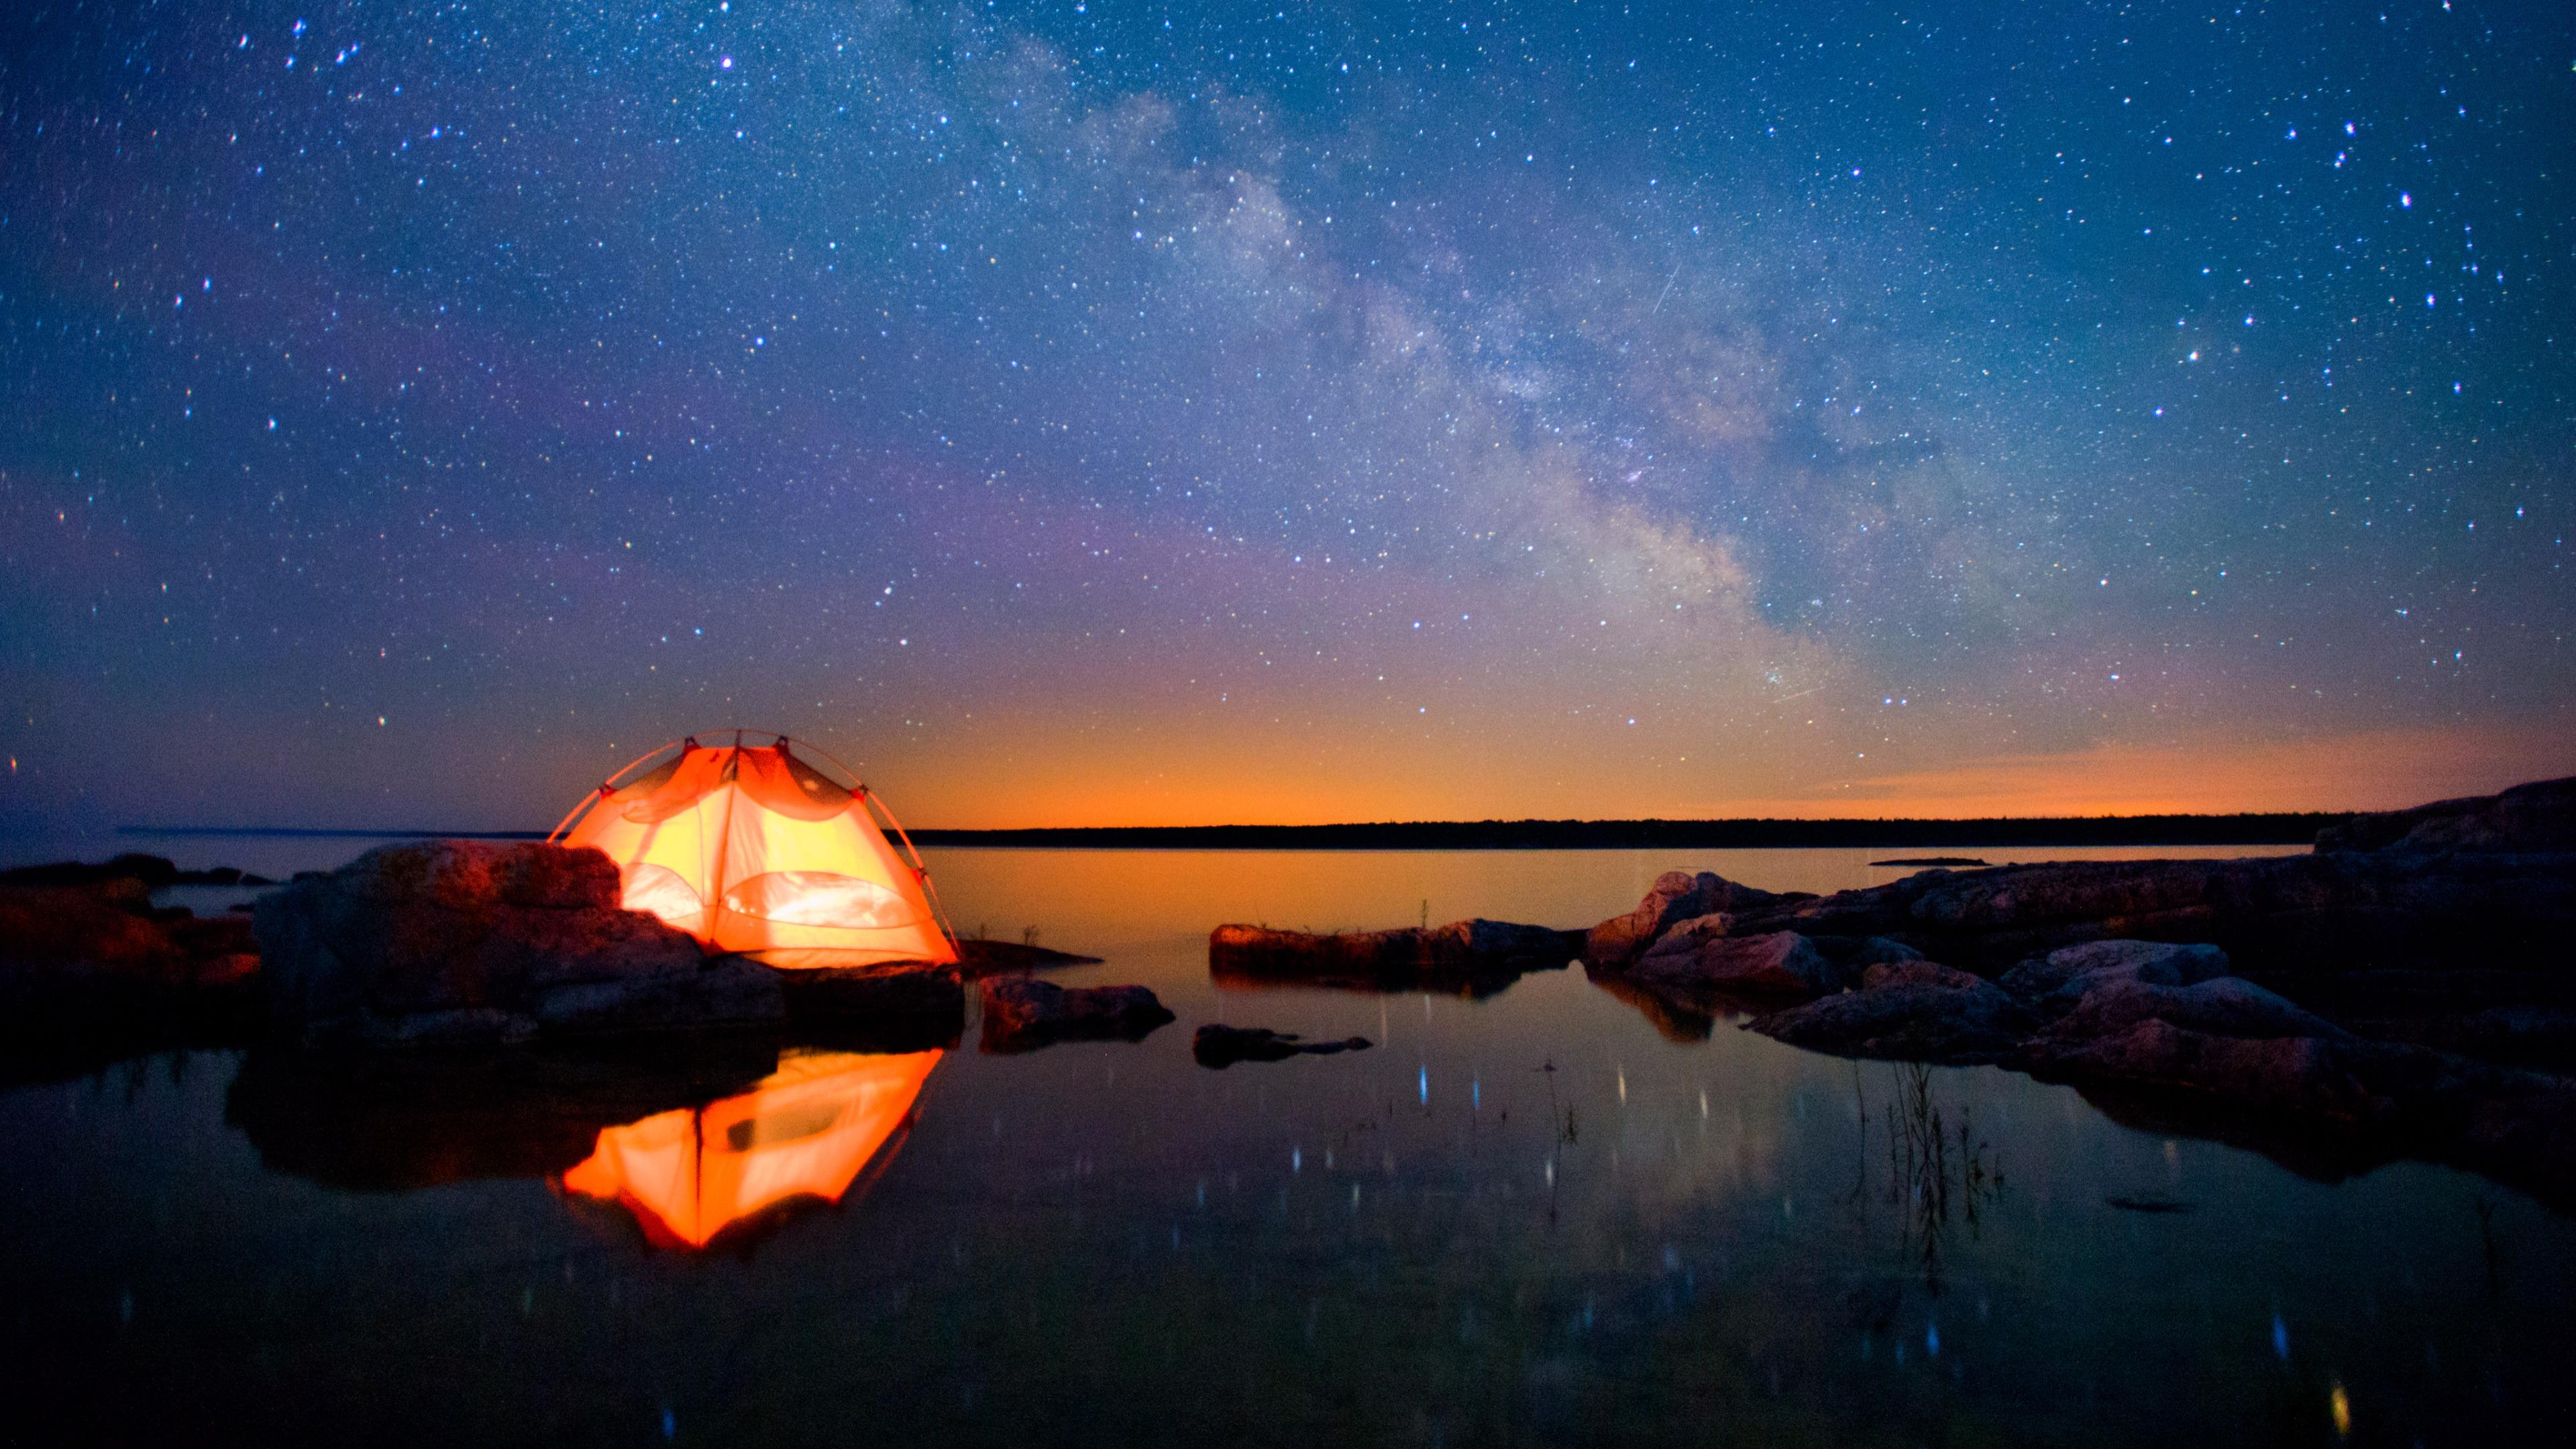 Tent under the Milky Way wallpaper